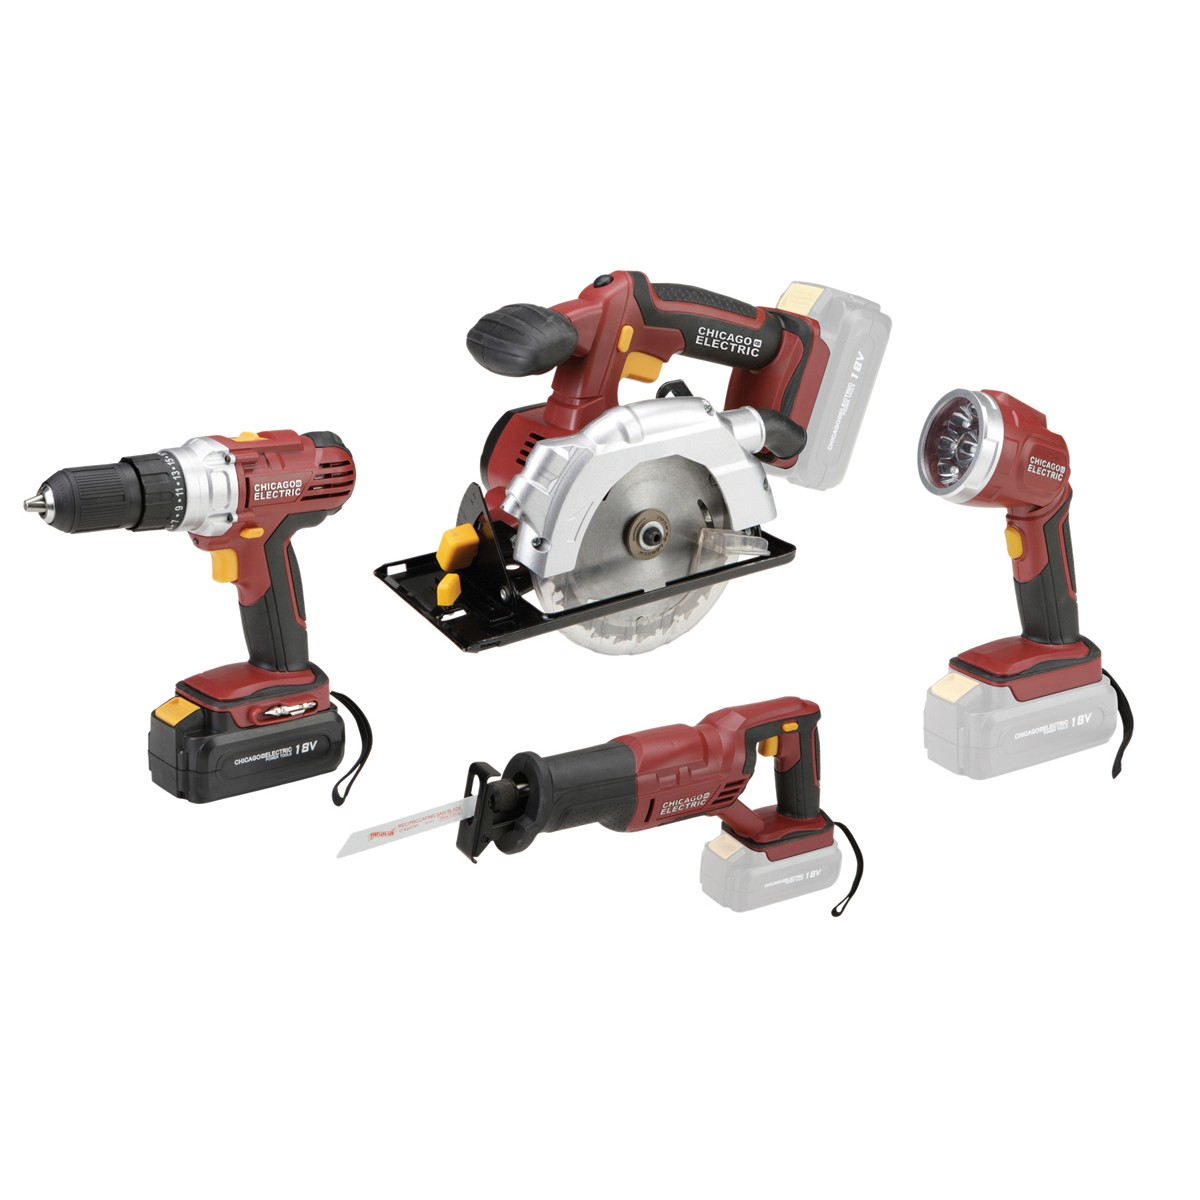 Soon After Reading His Comment I Visited The Harbor Freight Website To See If They Still Had Chicago Electric 18v Impact Driver Or Any Other